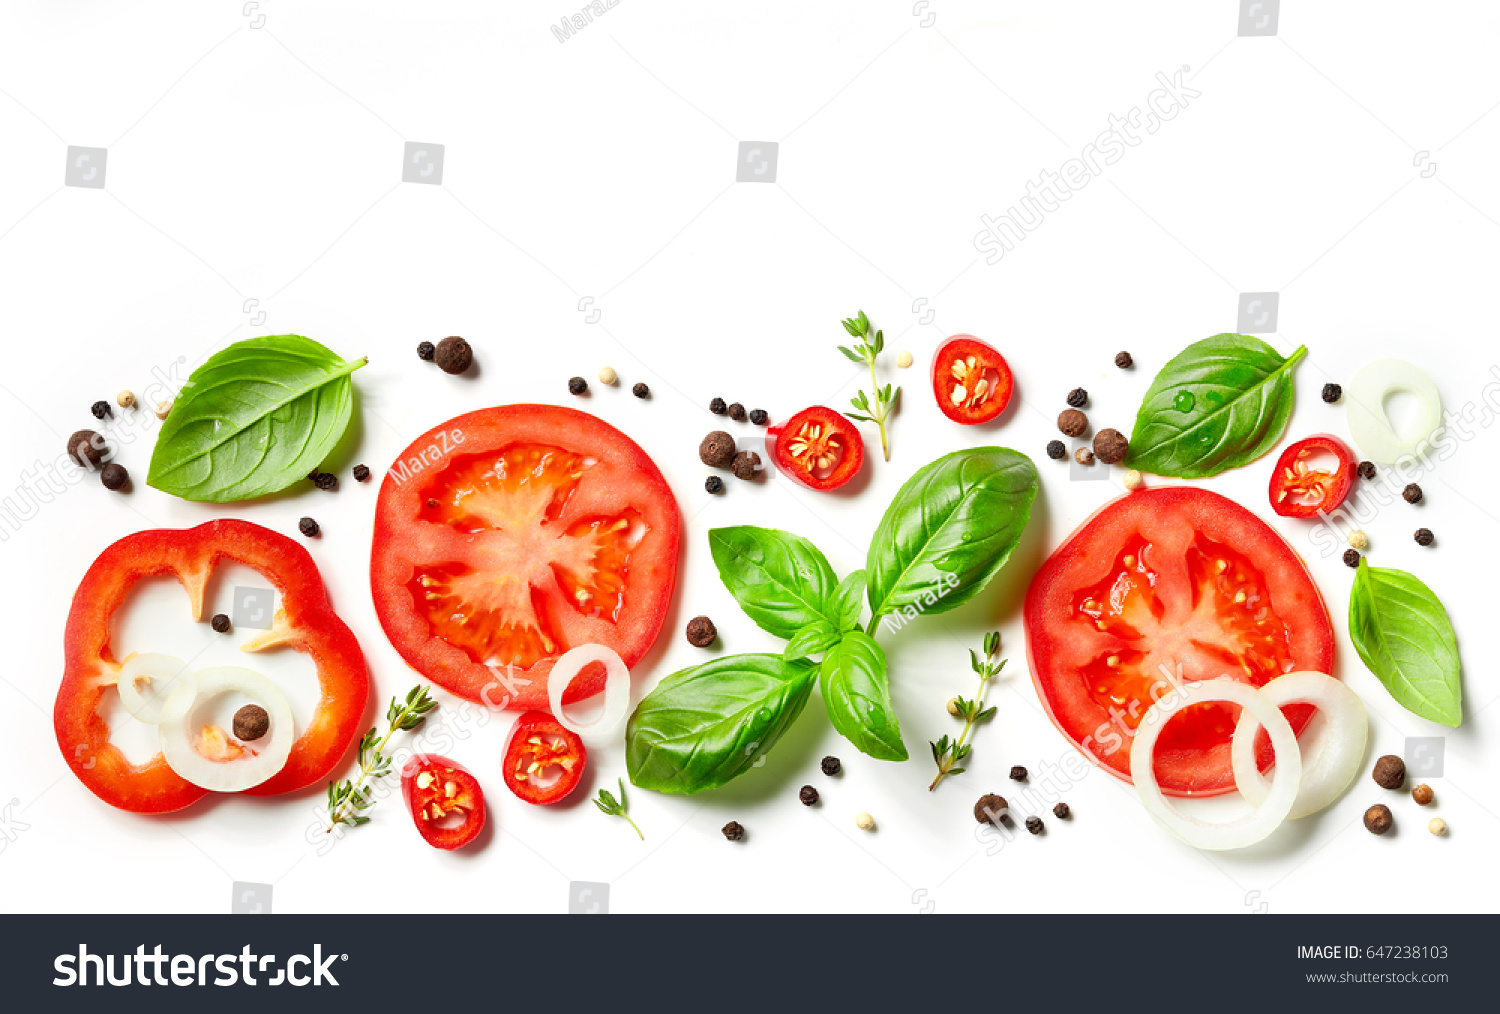 fresh vegetables, herbs and spices isolated on white background #647238103 - 123PhotoFree.com